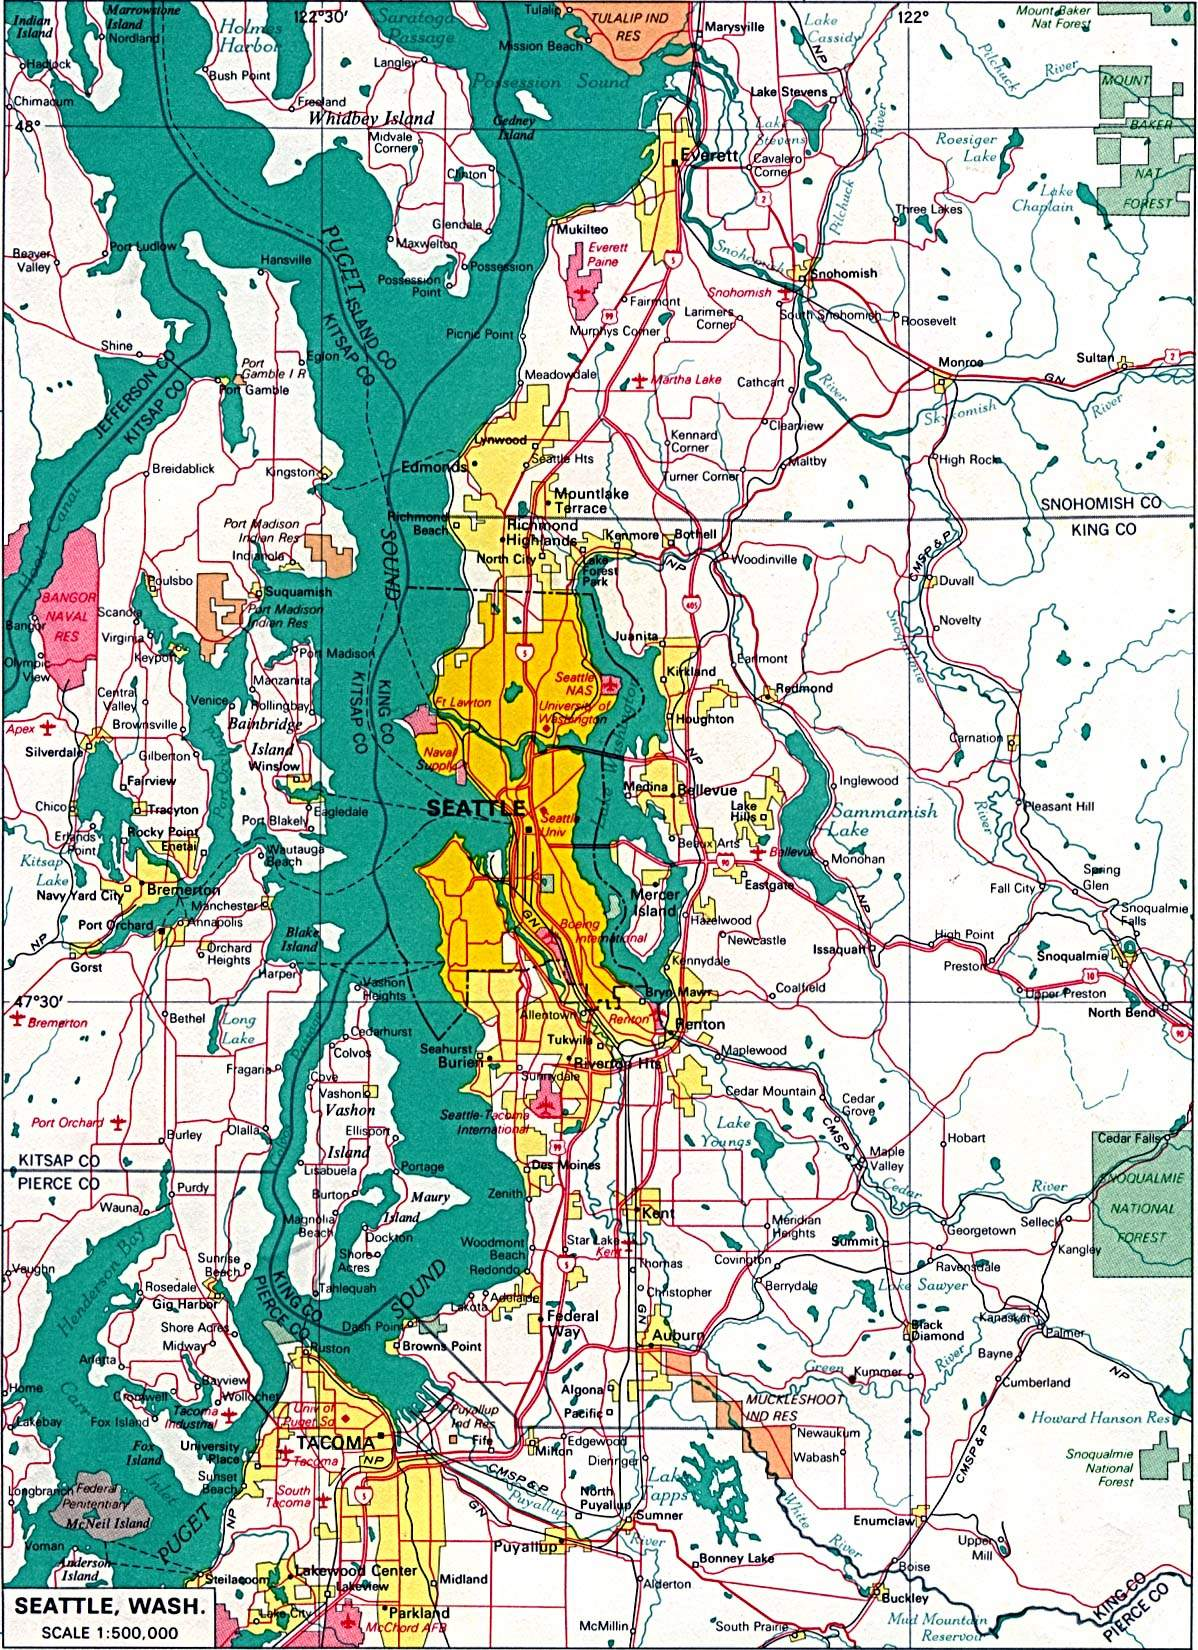 Large Seattle Maps For Free Download And Print High Resolution